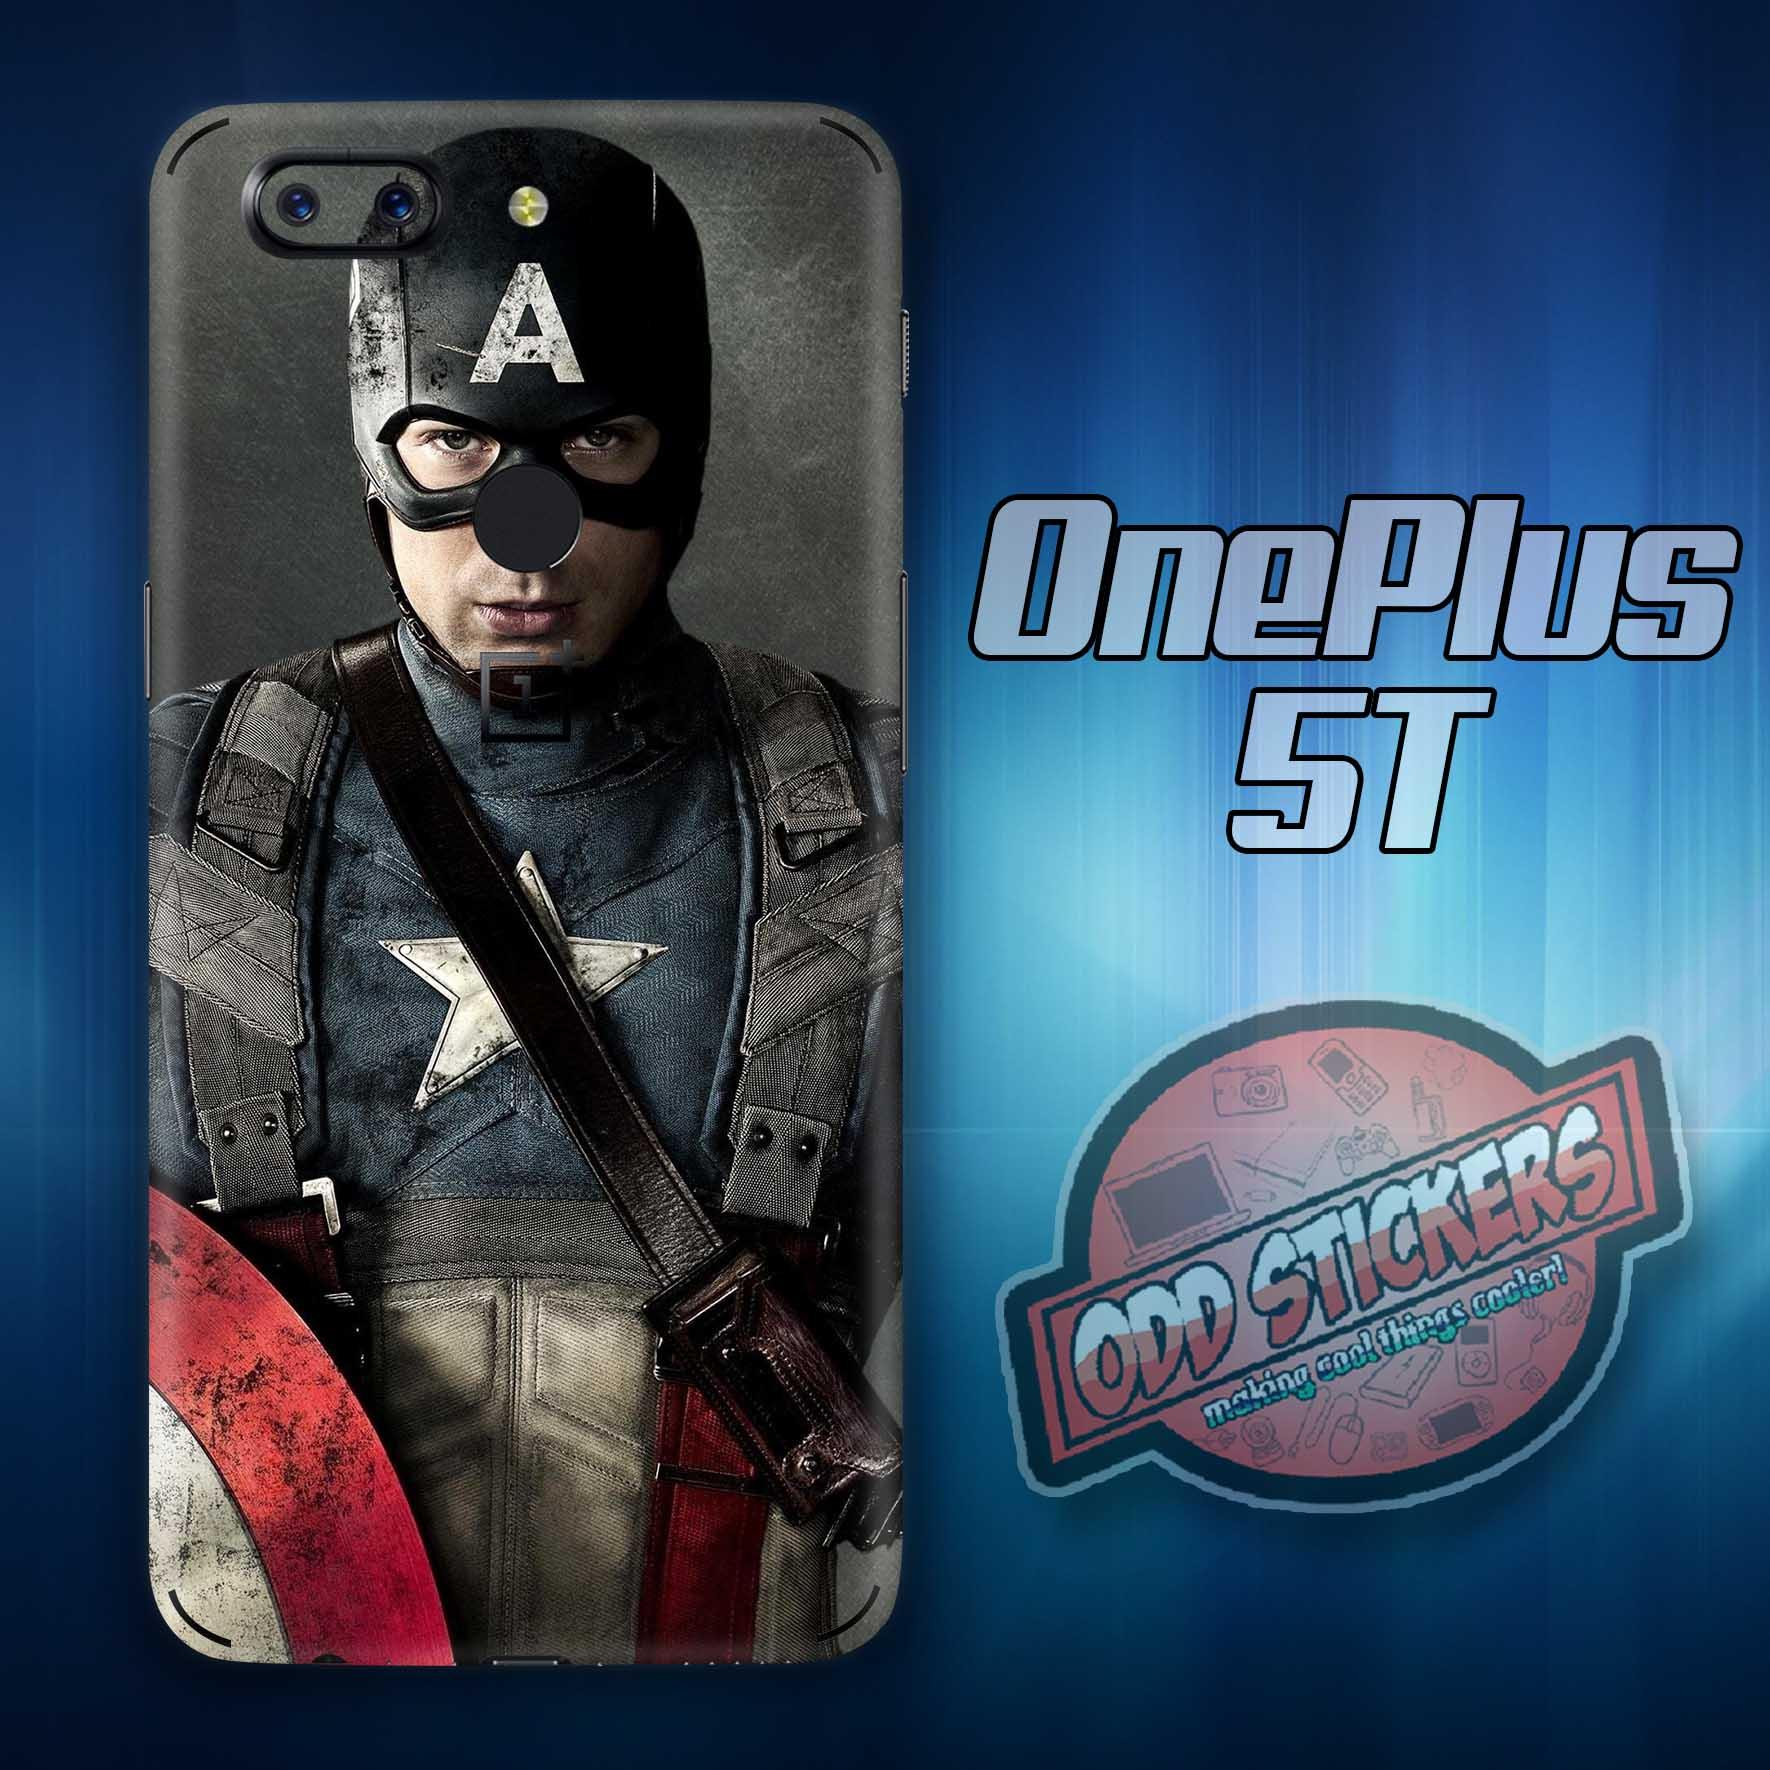 Phone Cases for sale - Cellphone Cases price, brands